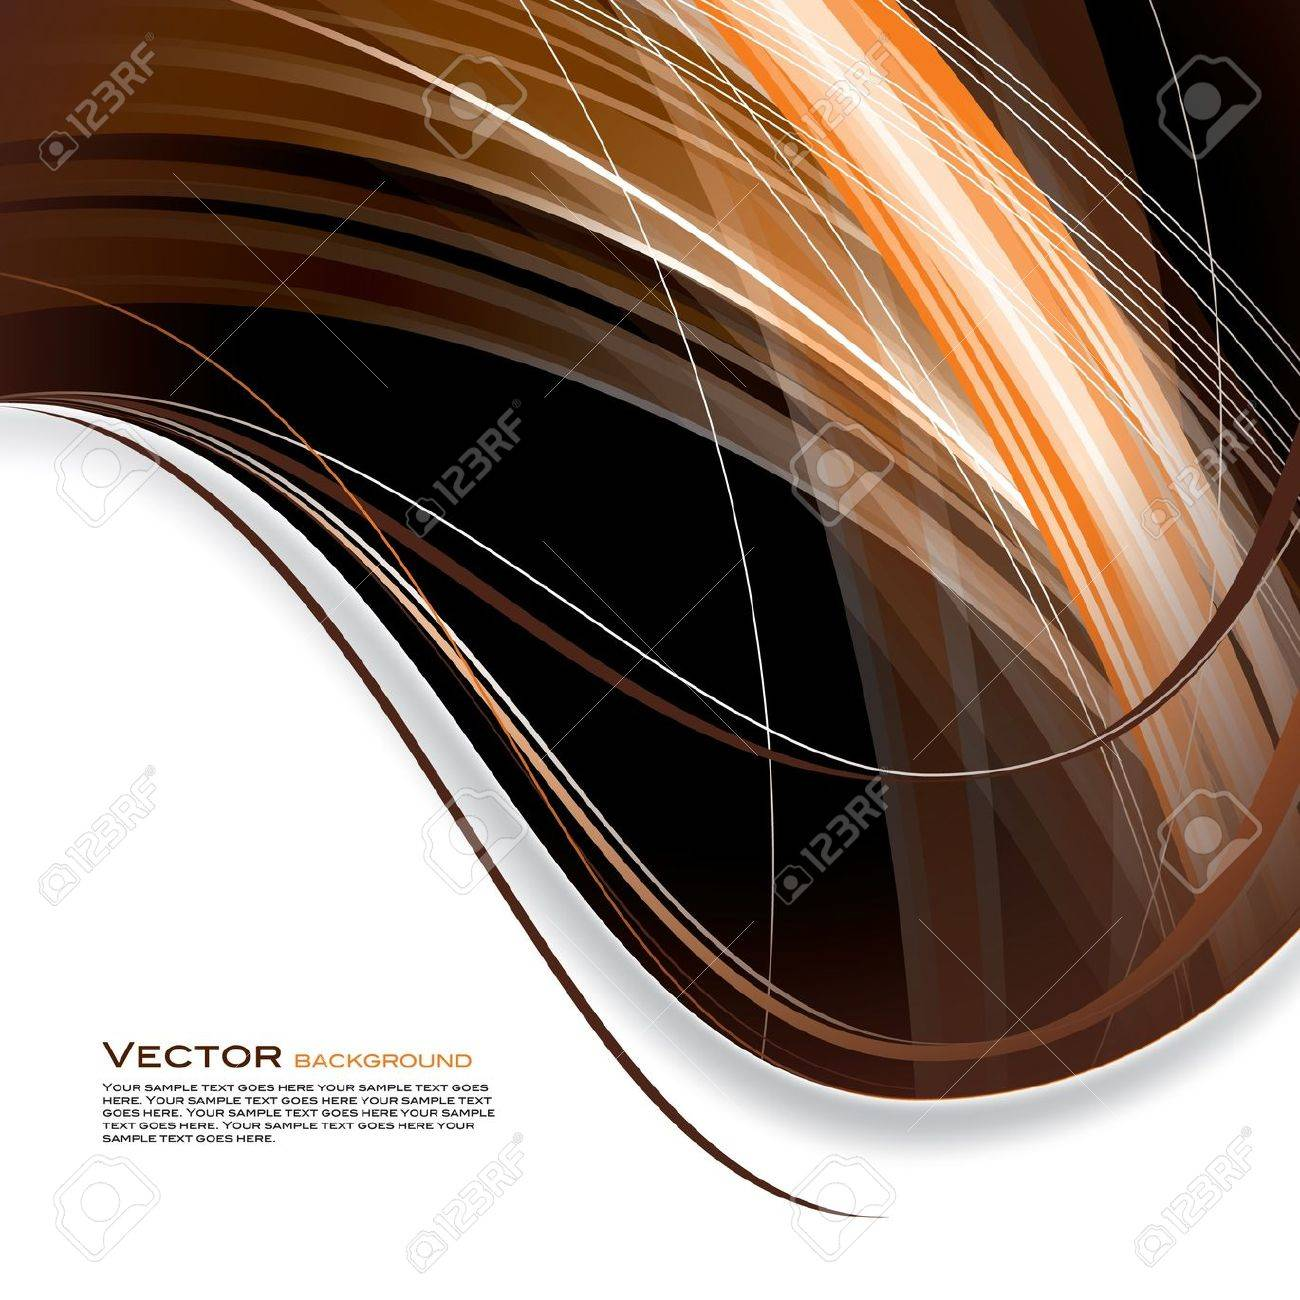 Background  Abstract Illustration Stock Vector - 14085358